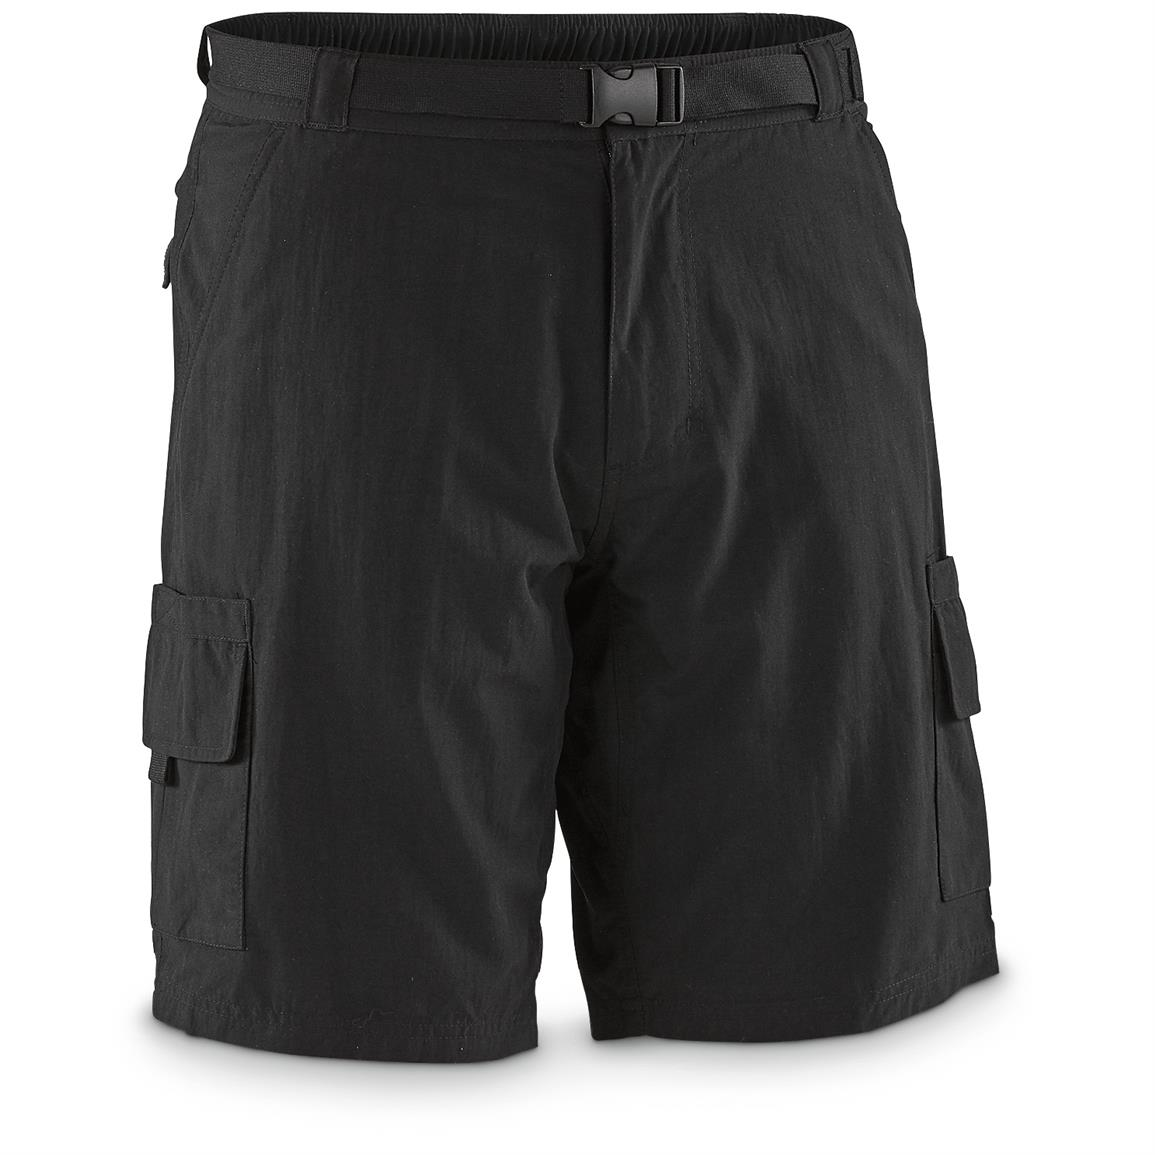 "Guide Gear Men's Cargo River Shorts, 10"" Inseam, Black"